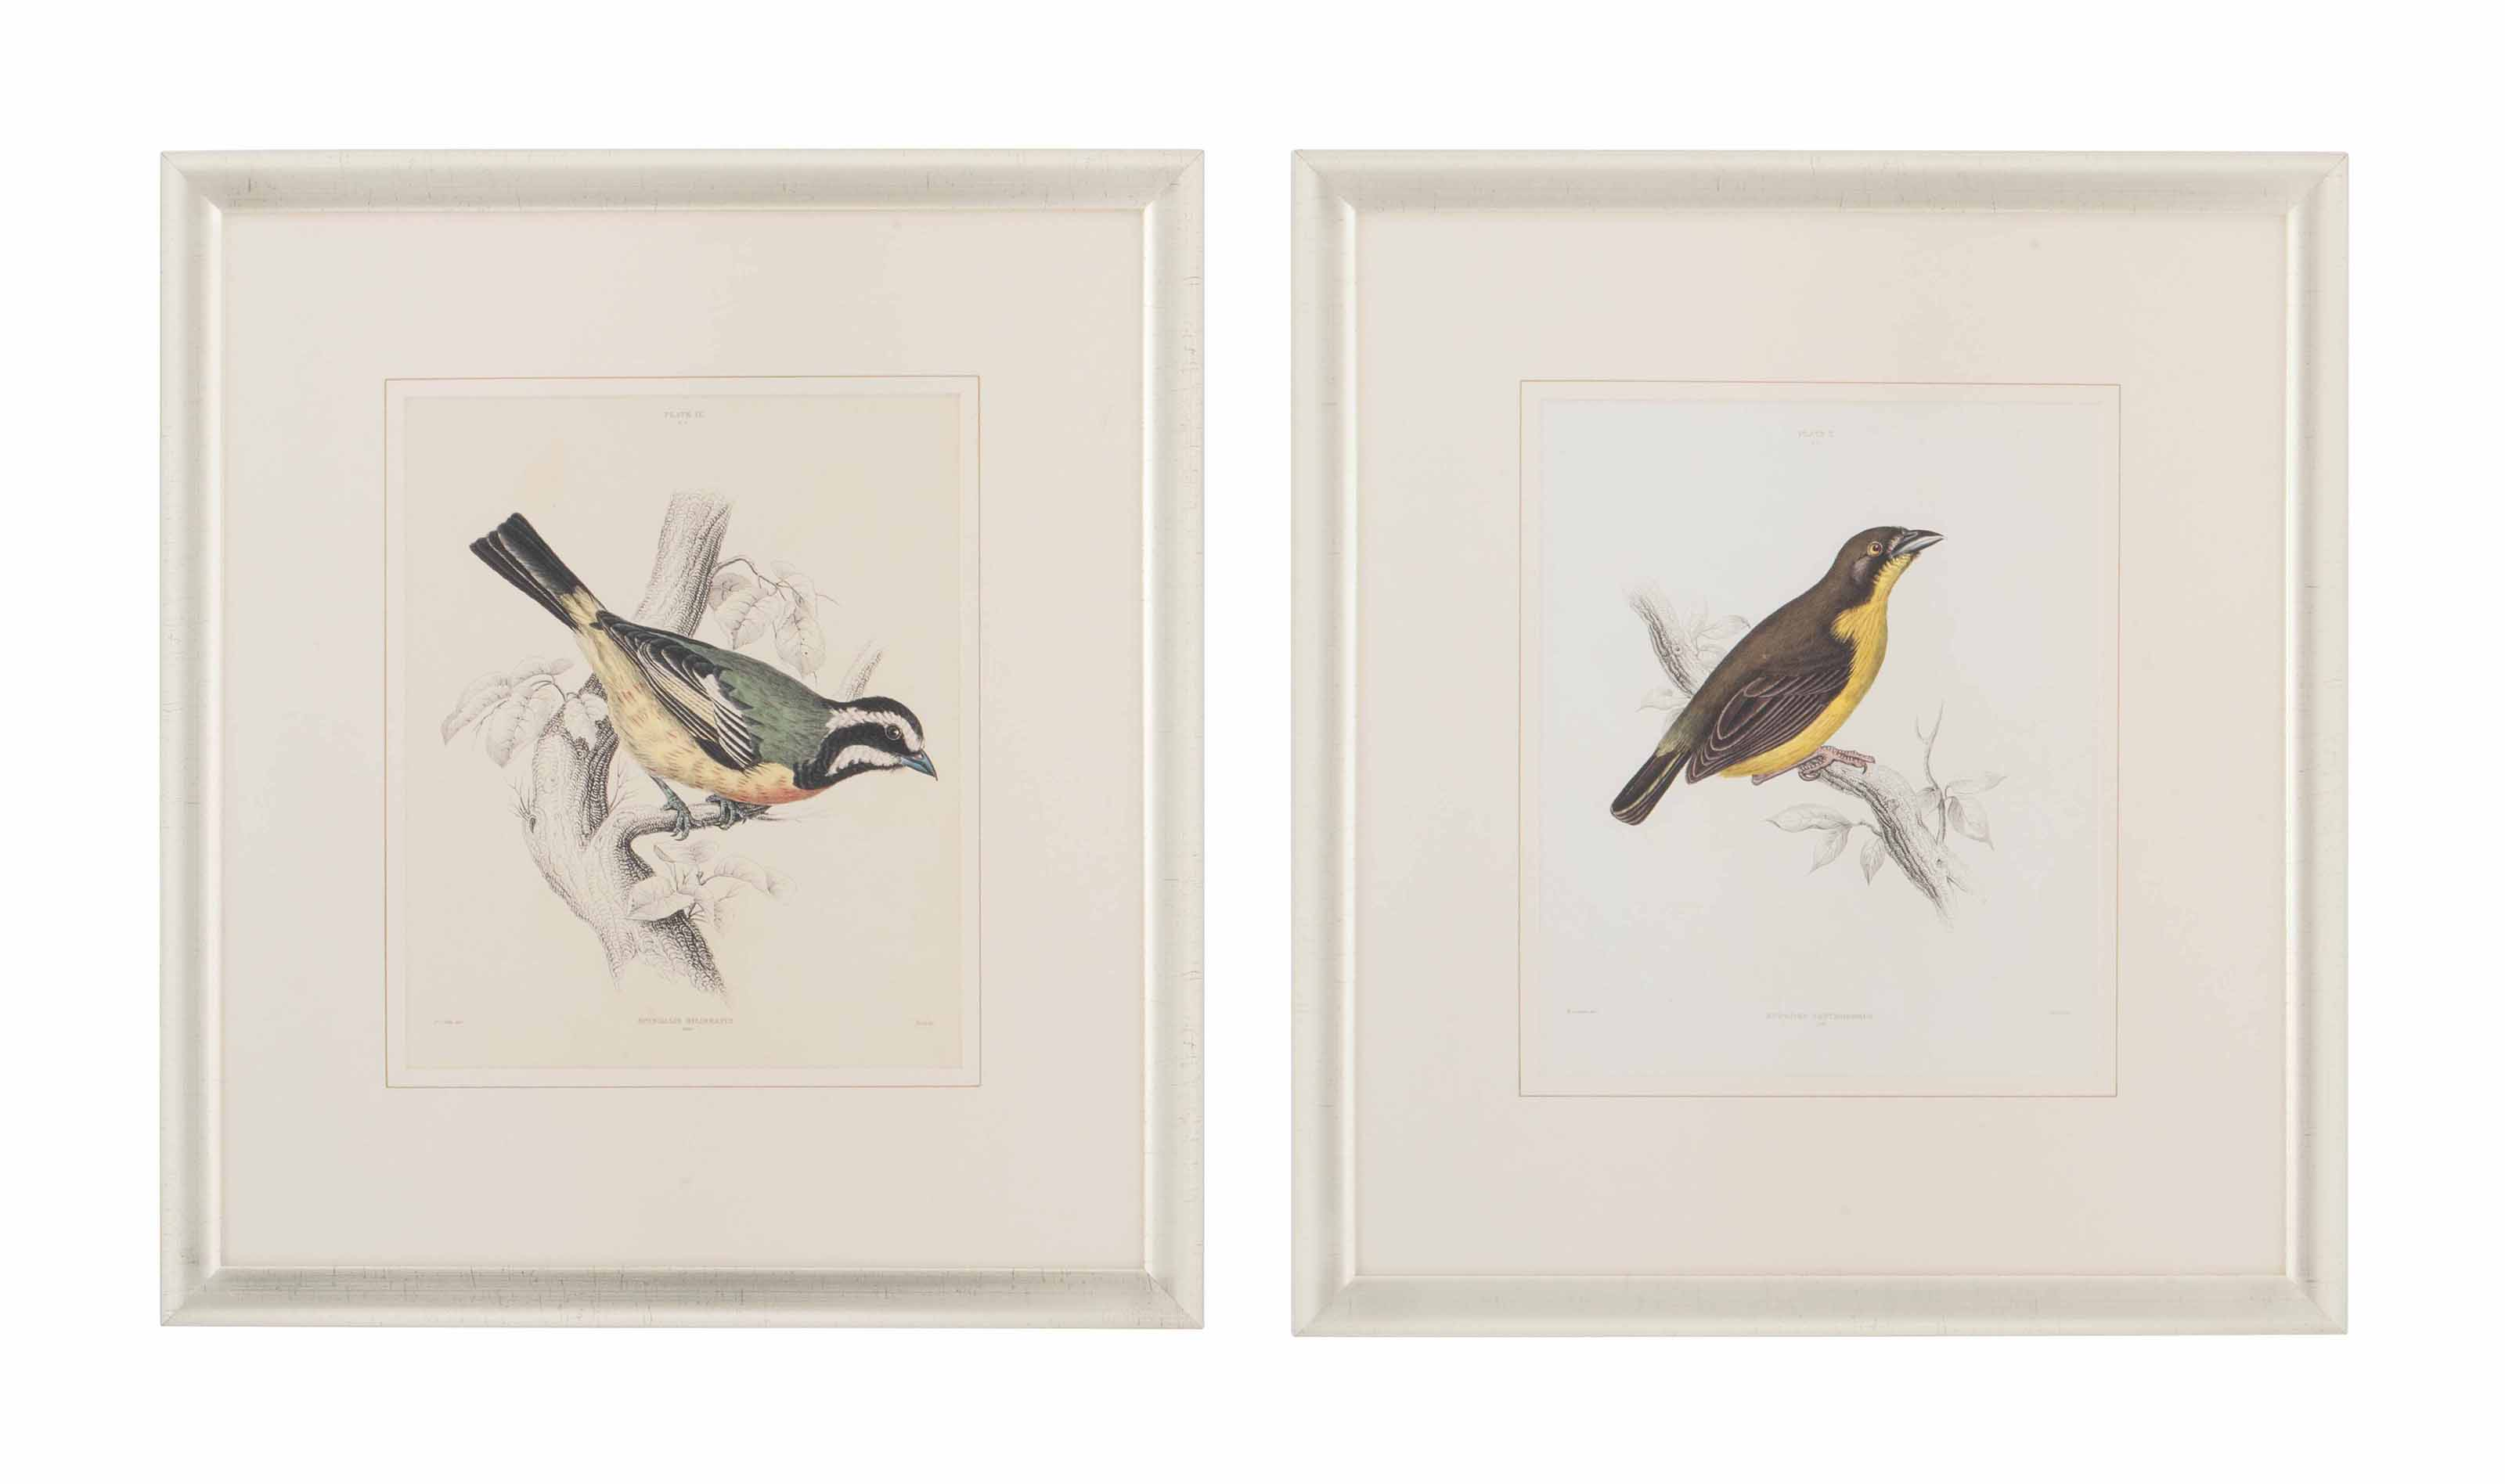 EIGHTEEN HAND-COLOURED ENGRAVINGS OF BIRDS